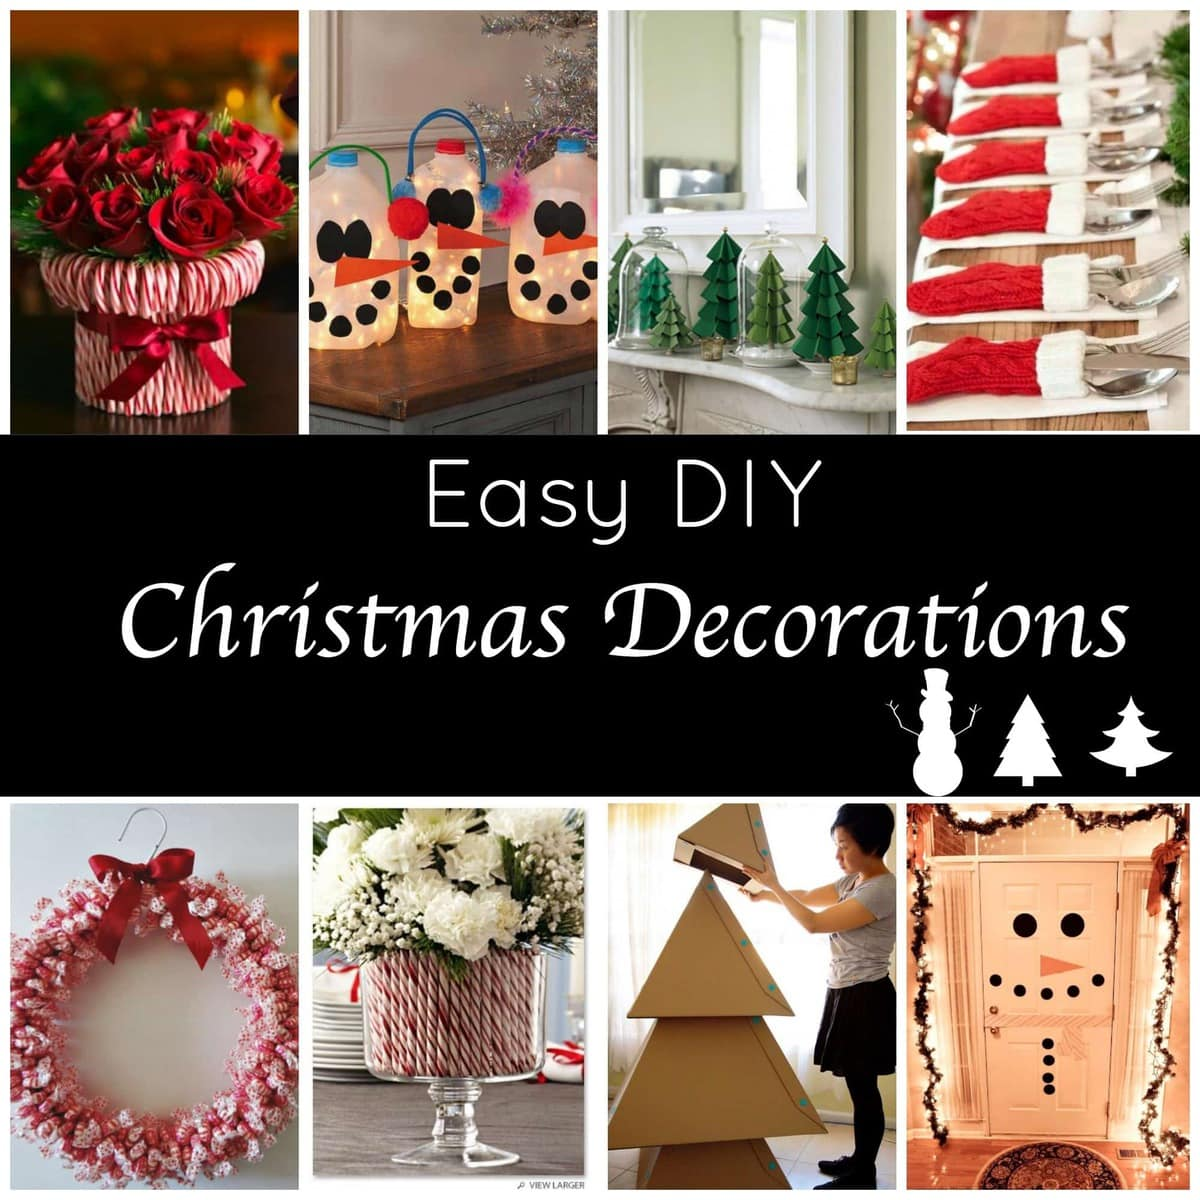 Cute and easy diy holiday decorations for a festive home for Christmas decorations to make at home with the kids